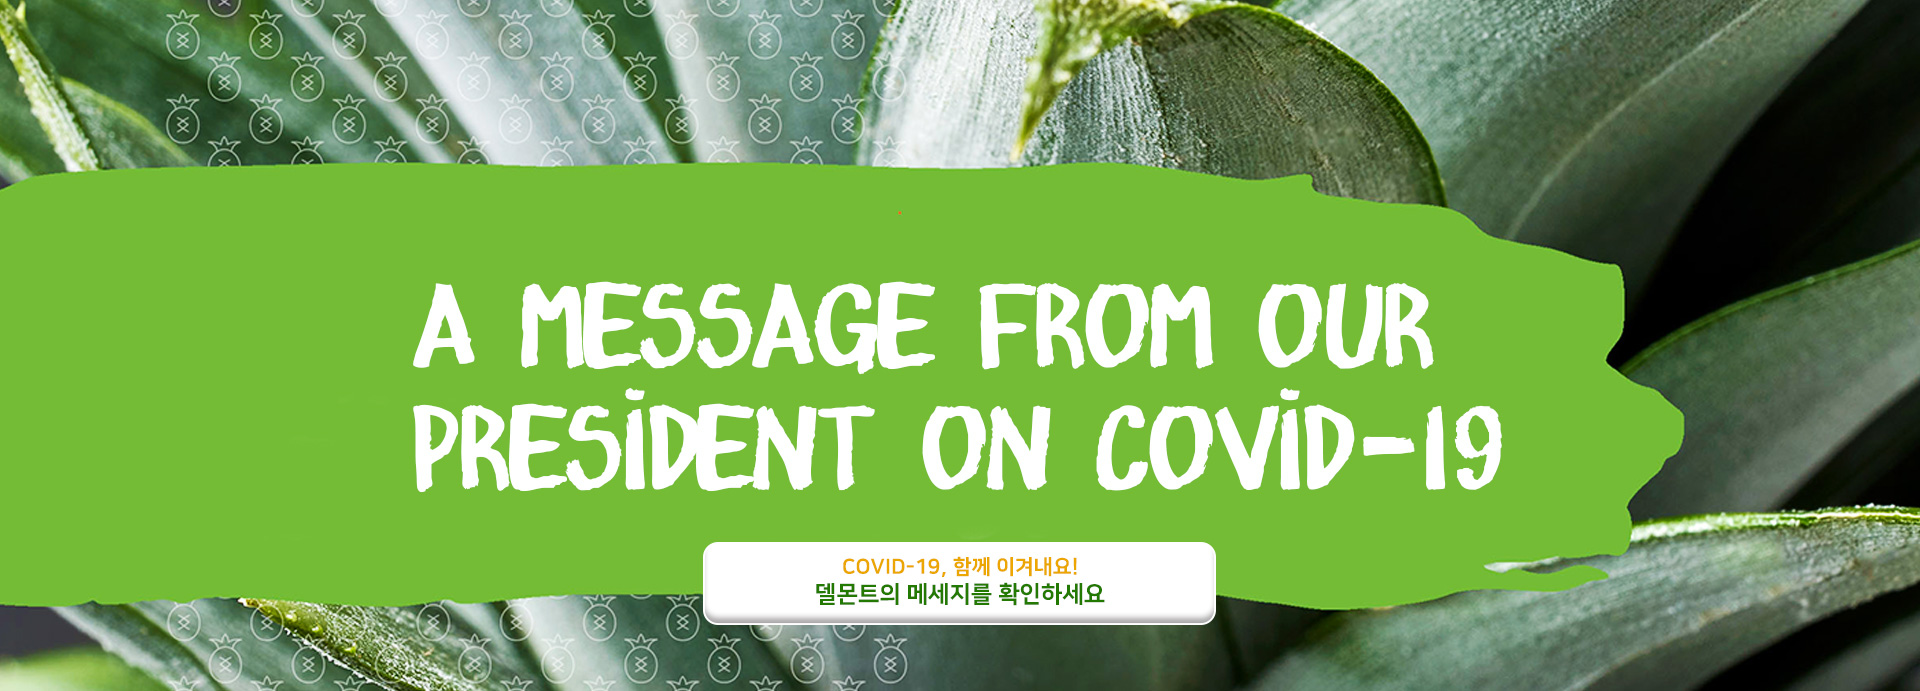 a message from our president on covid-19